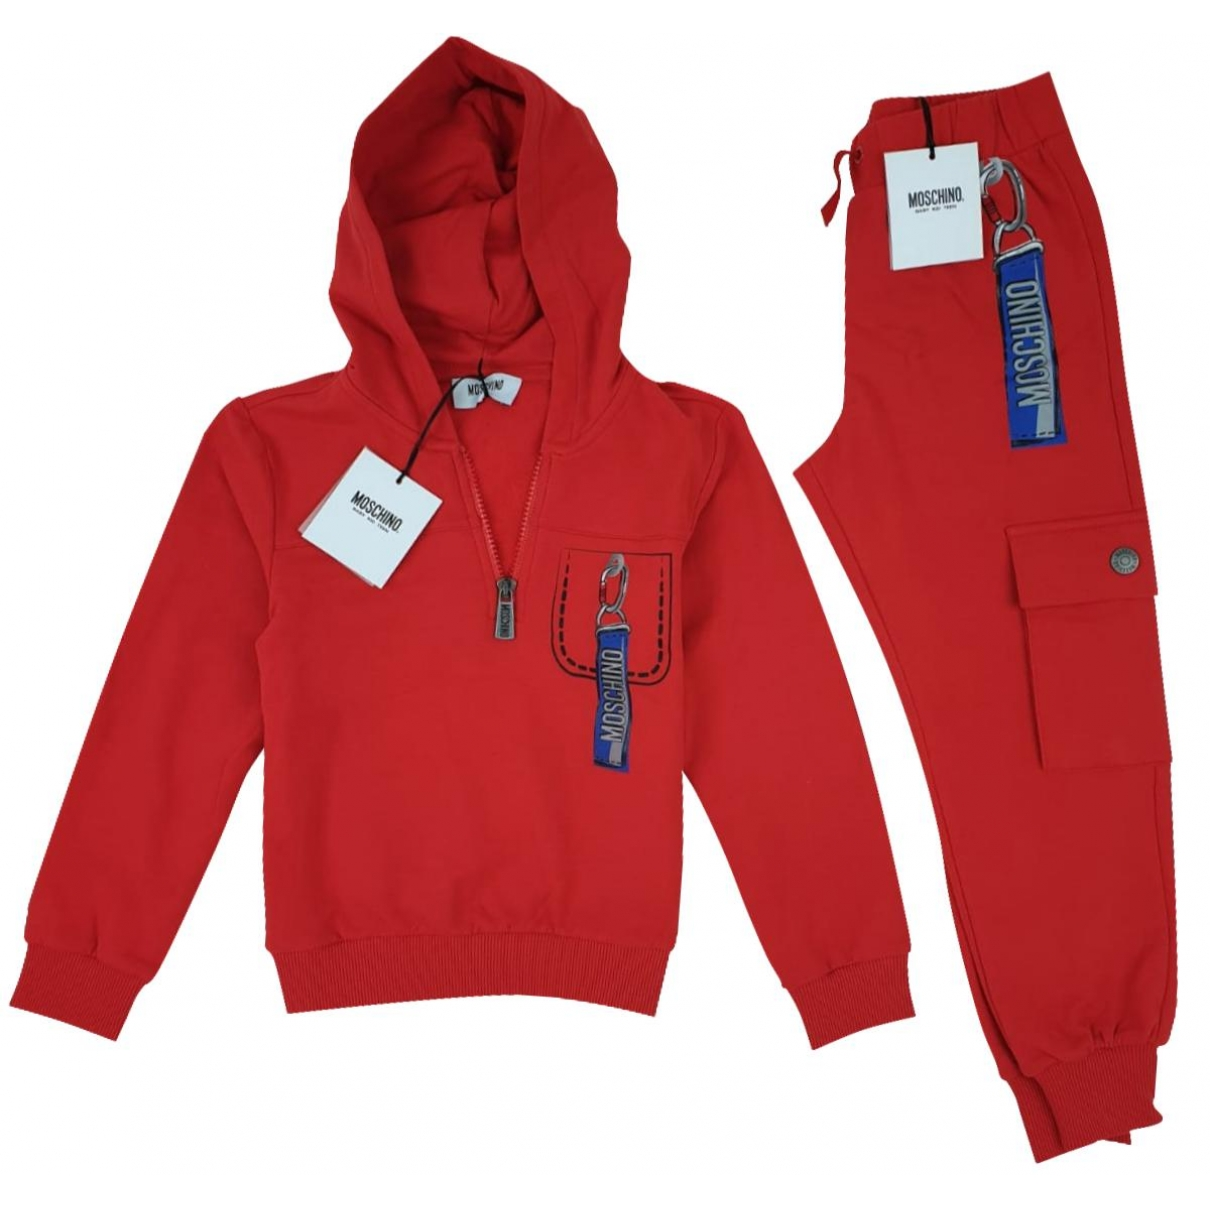 Moschino \N Red Cotton Outfits for Kids 6 years - until 45 inches UK